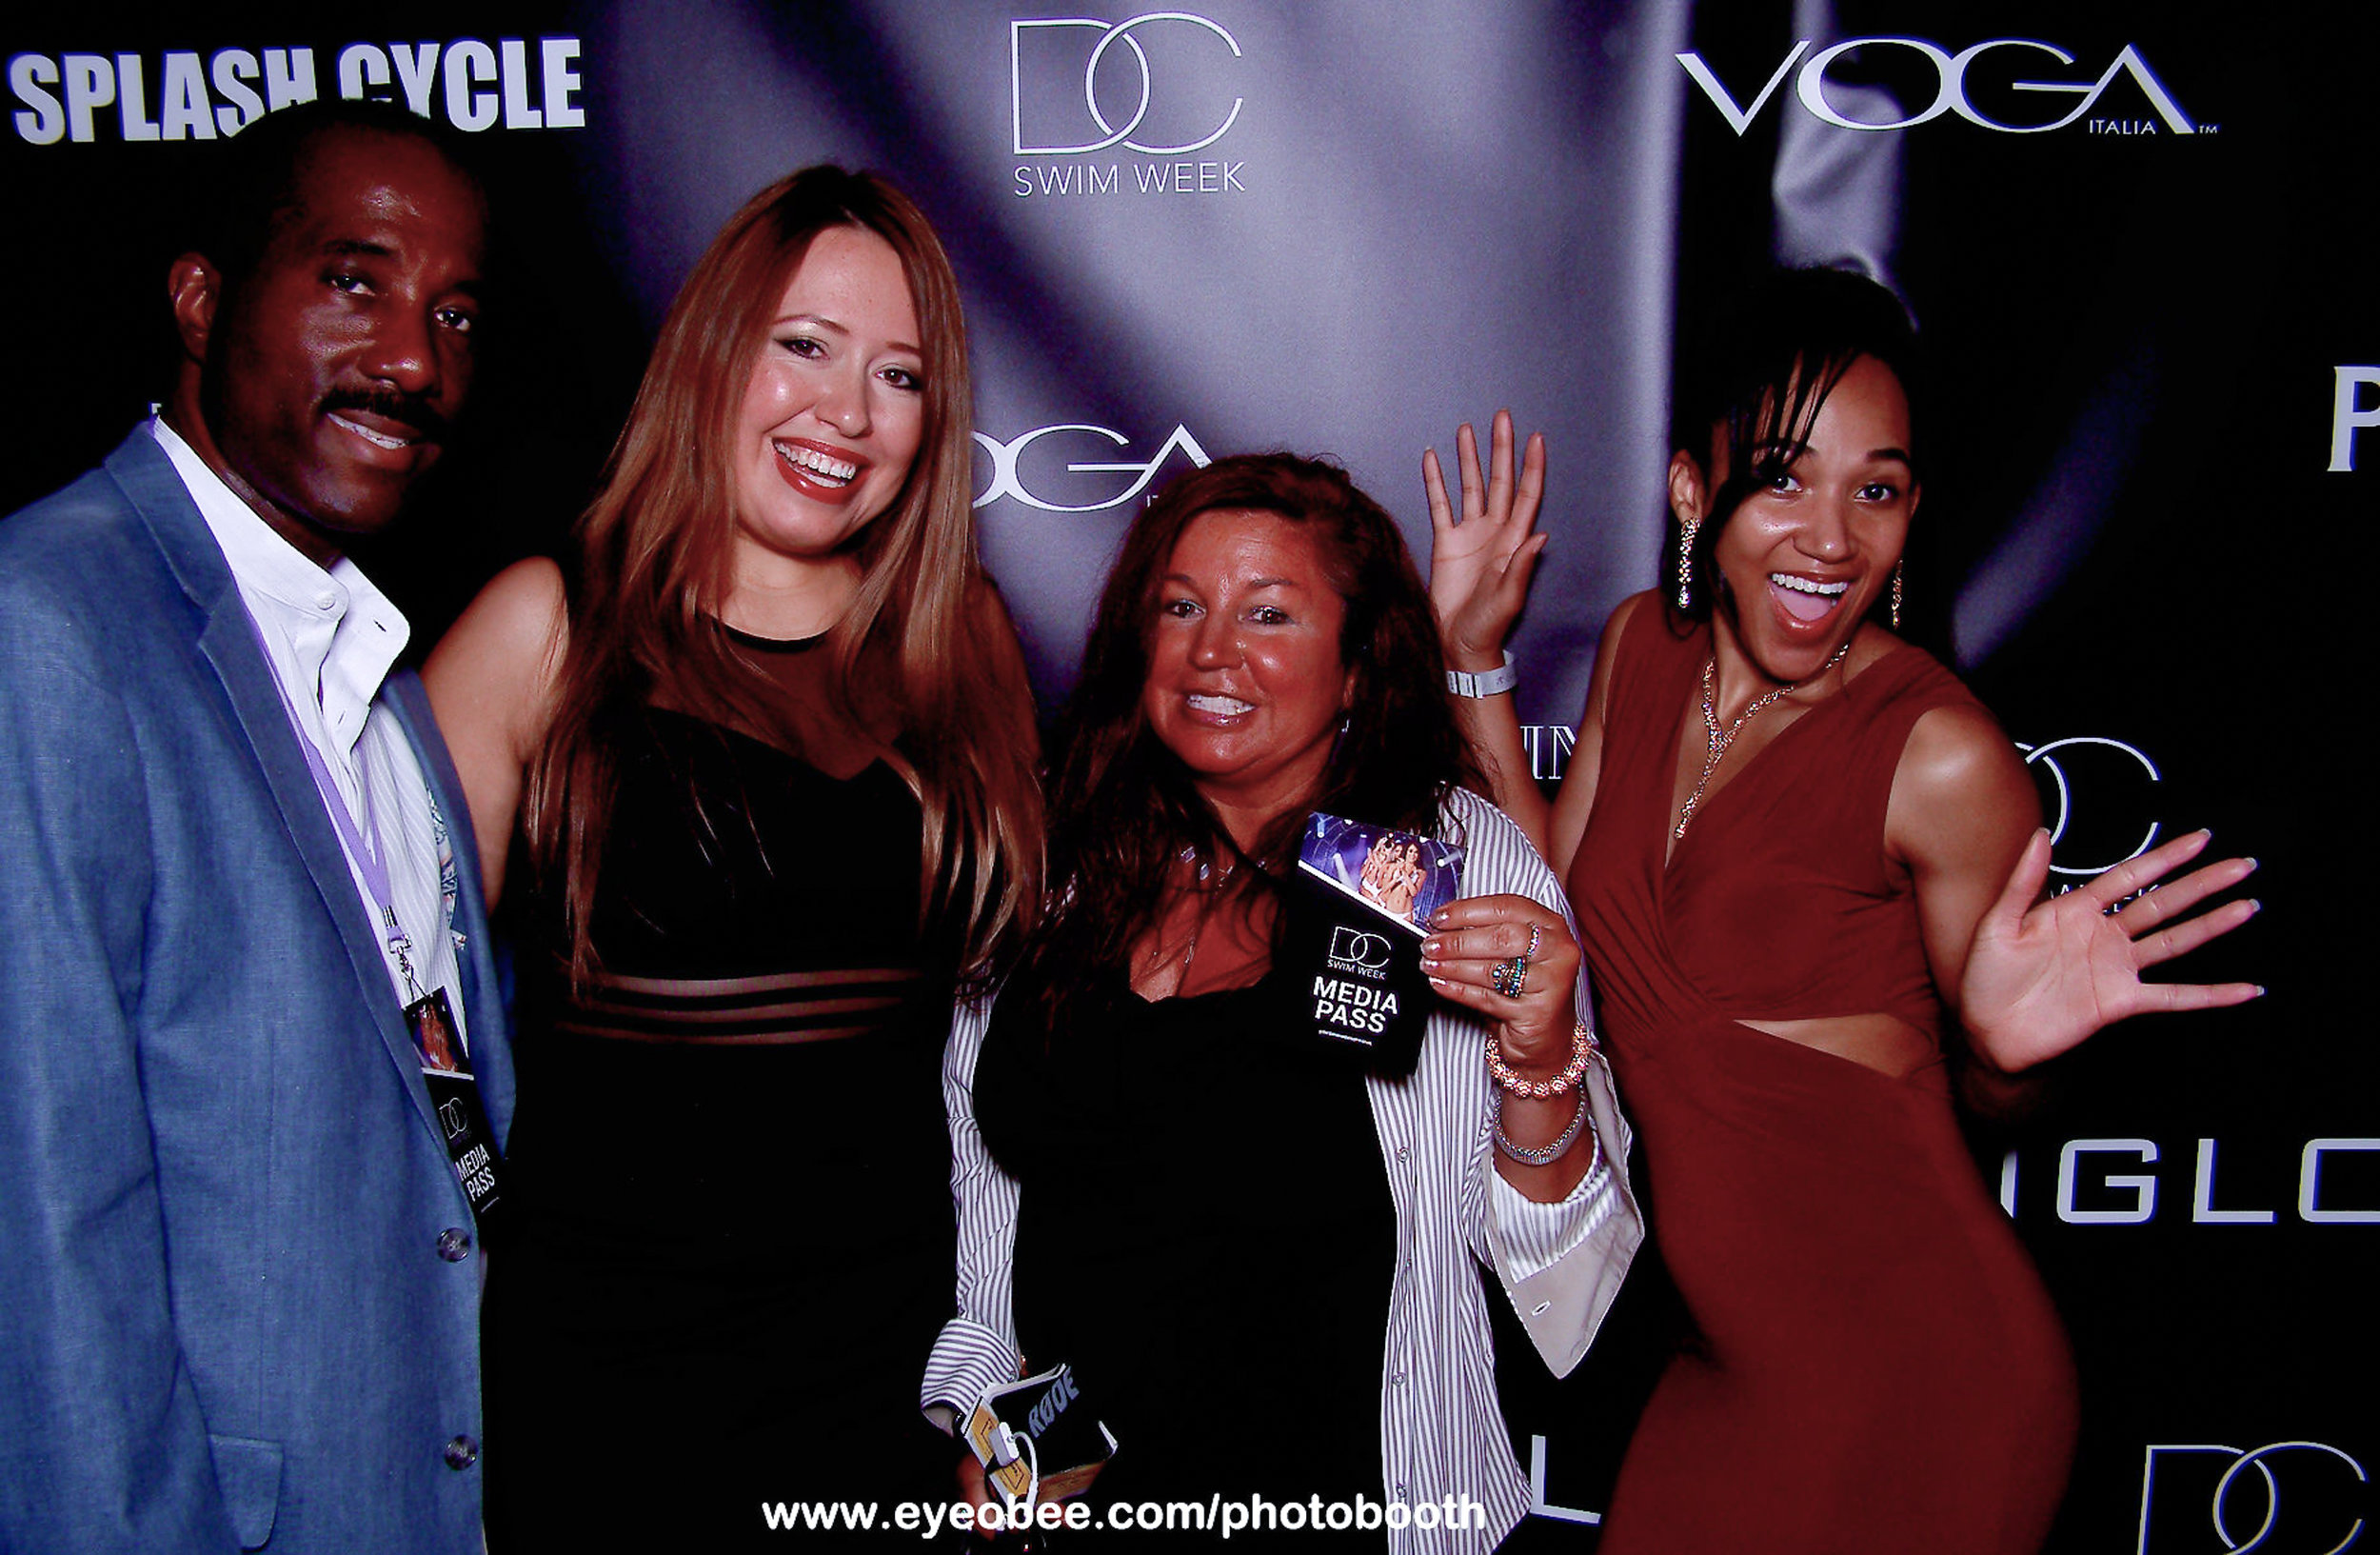 eyeobee PhotoBooth - DCSW-346.jpg